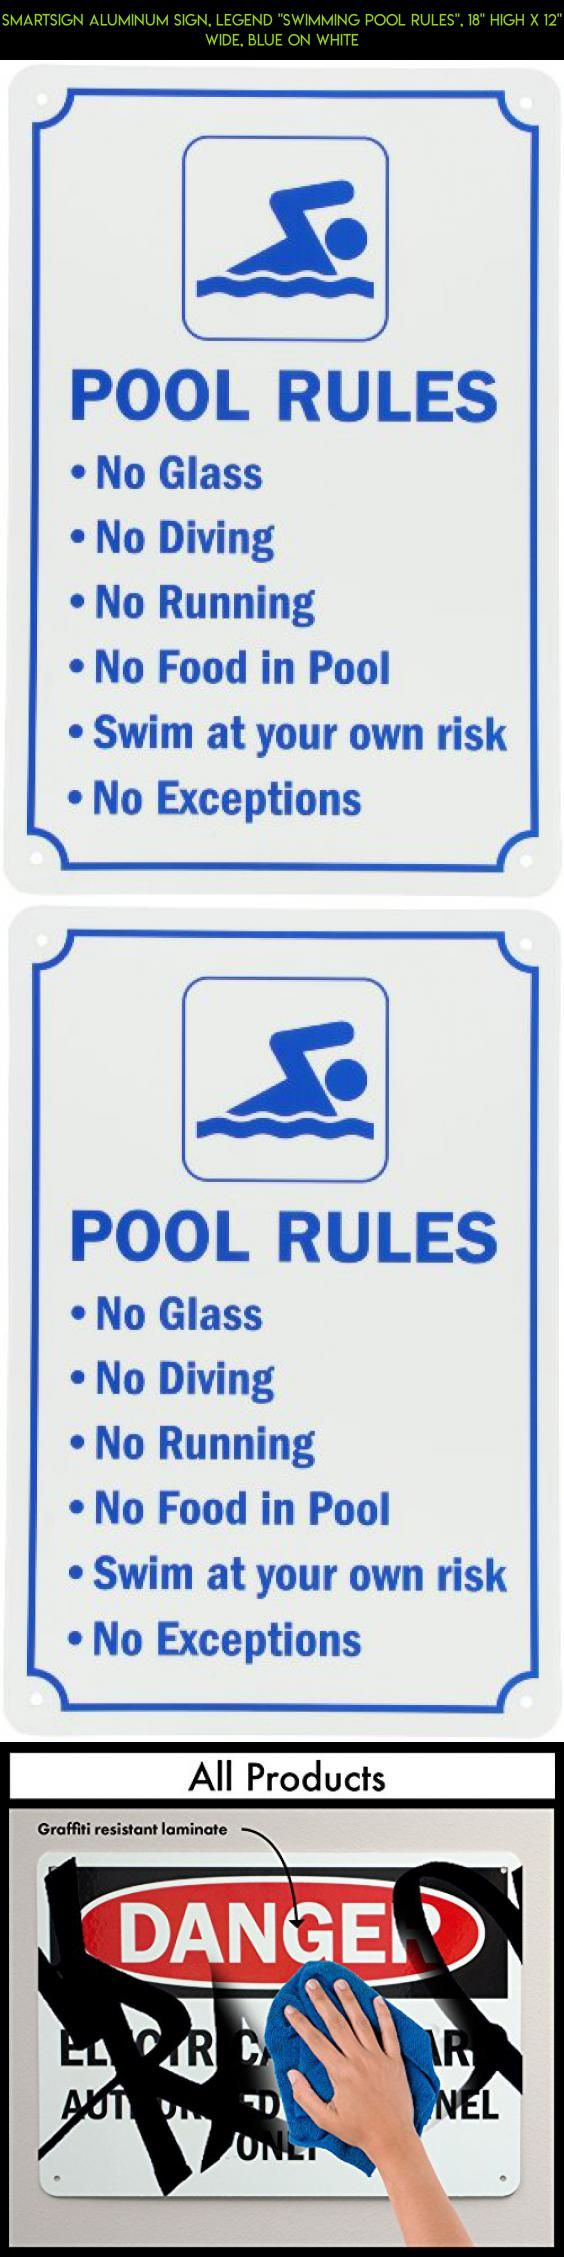 "SmartSign Aluminum Sign, Legend ""Swimming Pool Rules"", 18"" high x 12"" wide, Blue on White #camera #fpv #parts #products #kit #pools #no #gadgets #plans #drone #racing #technology #tech #shopping"